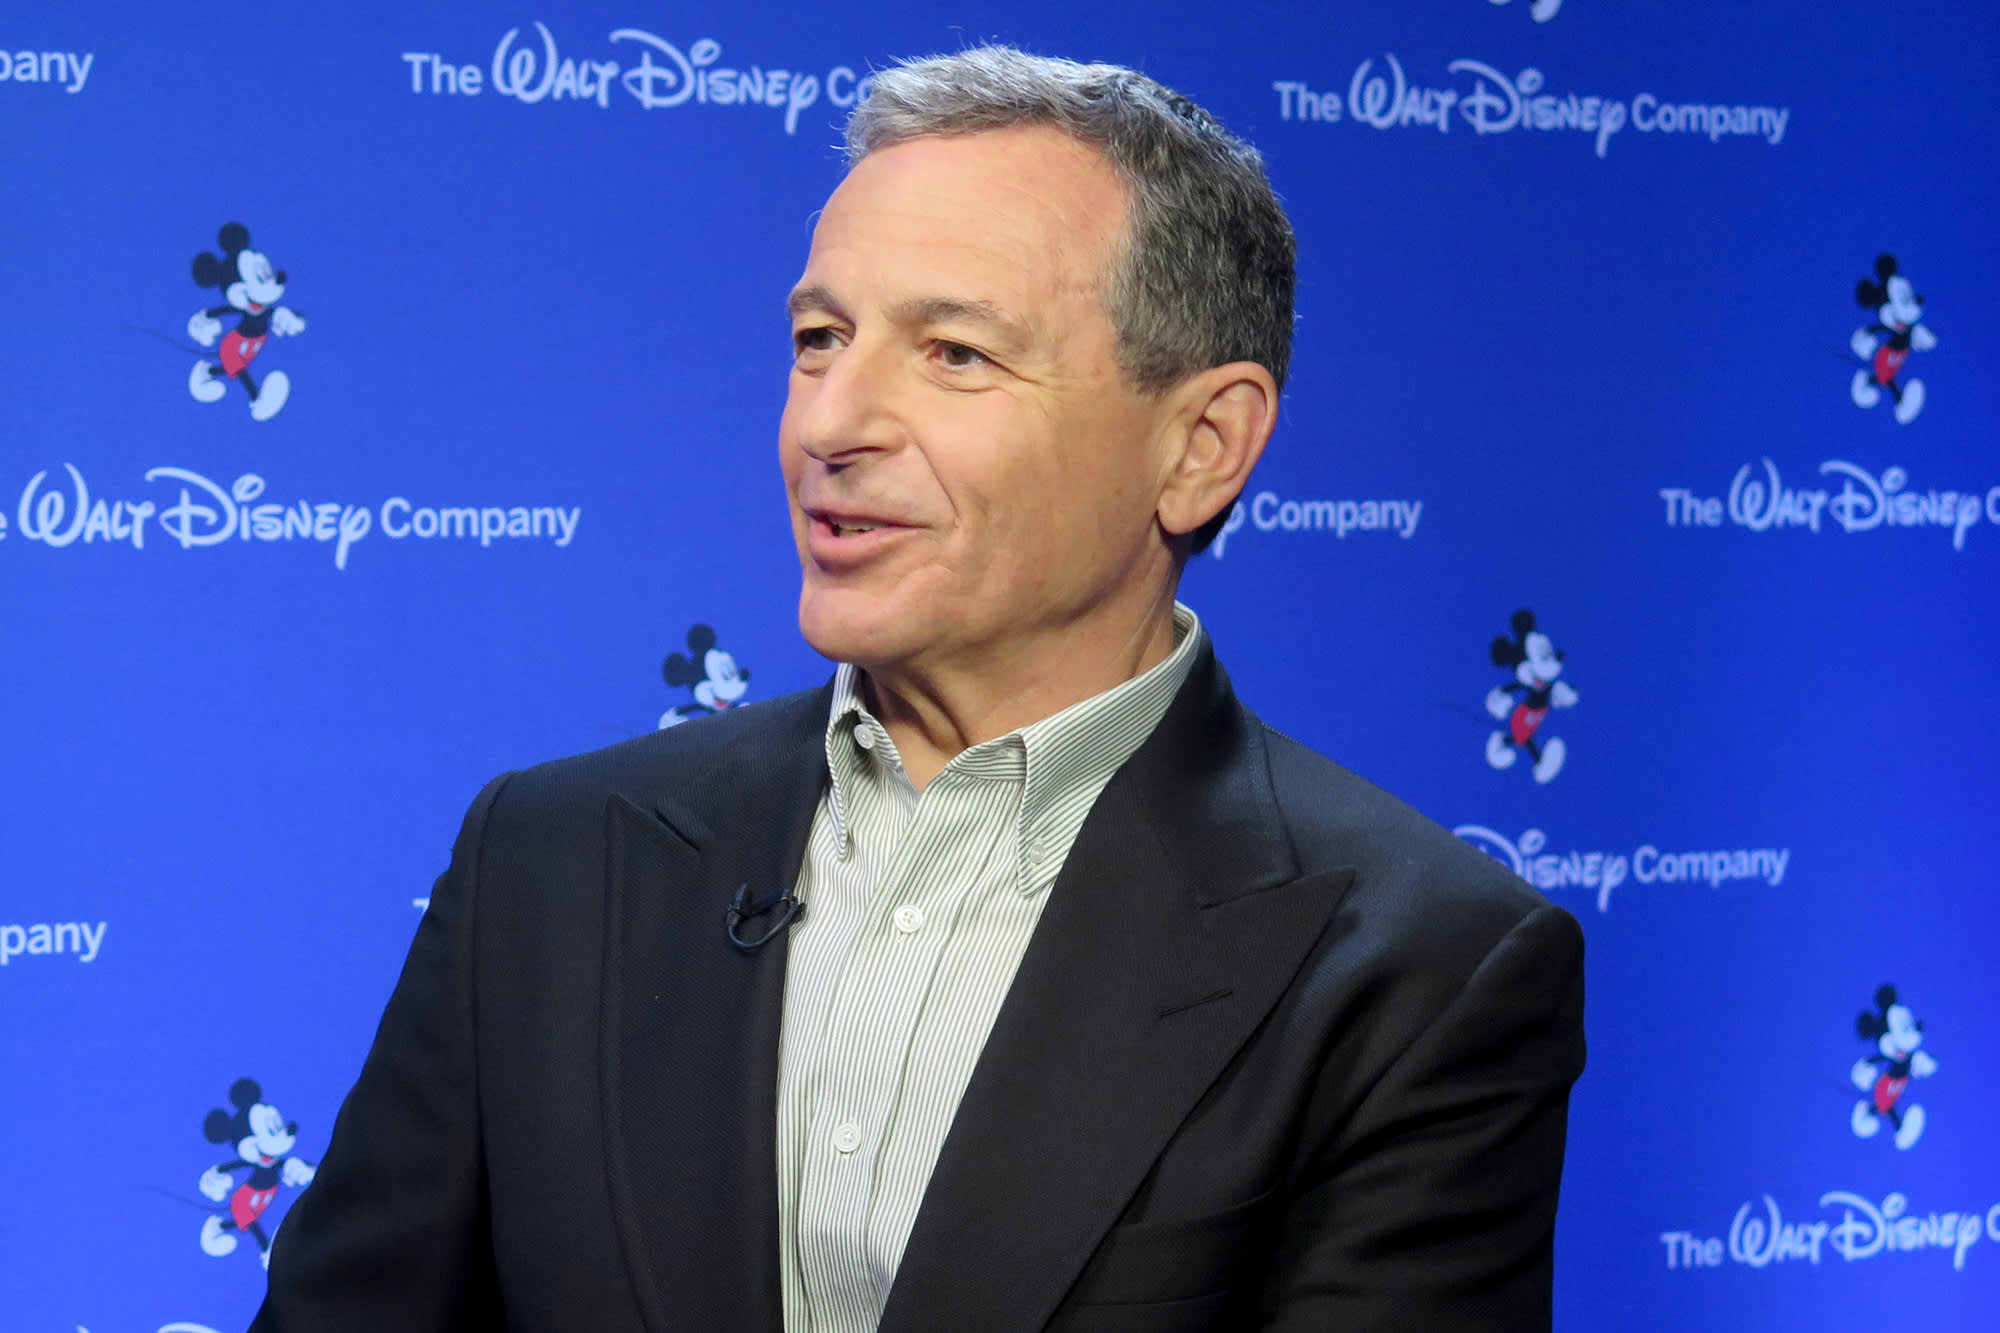 Disney and The New York Times show how the media dinosaurs can stay on top